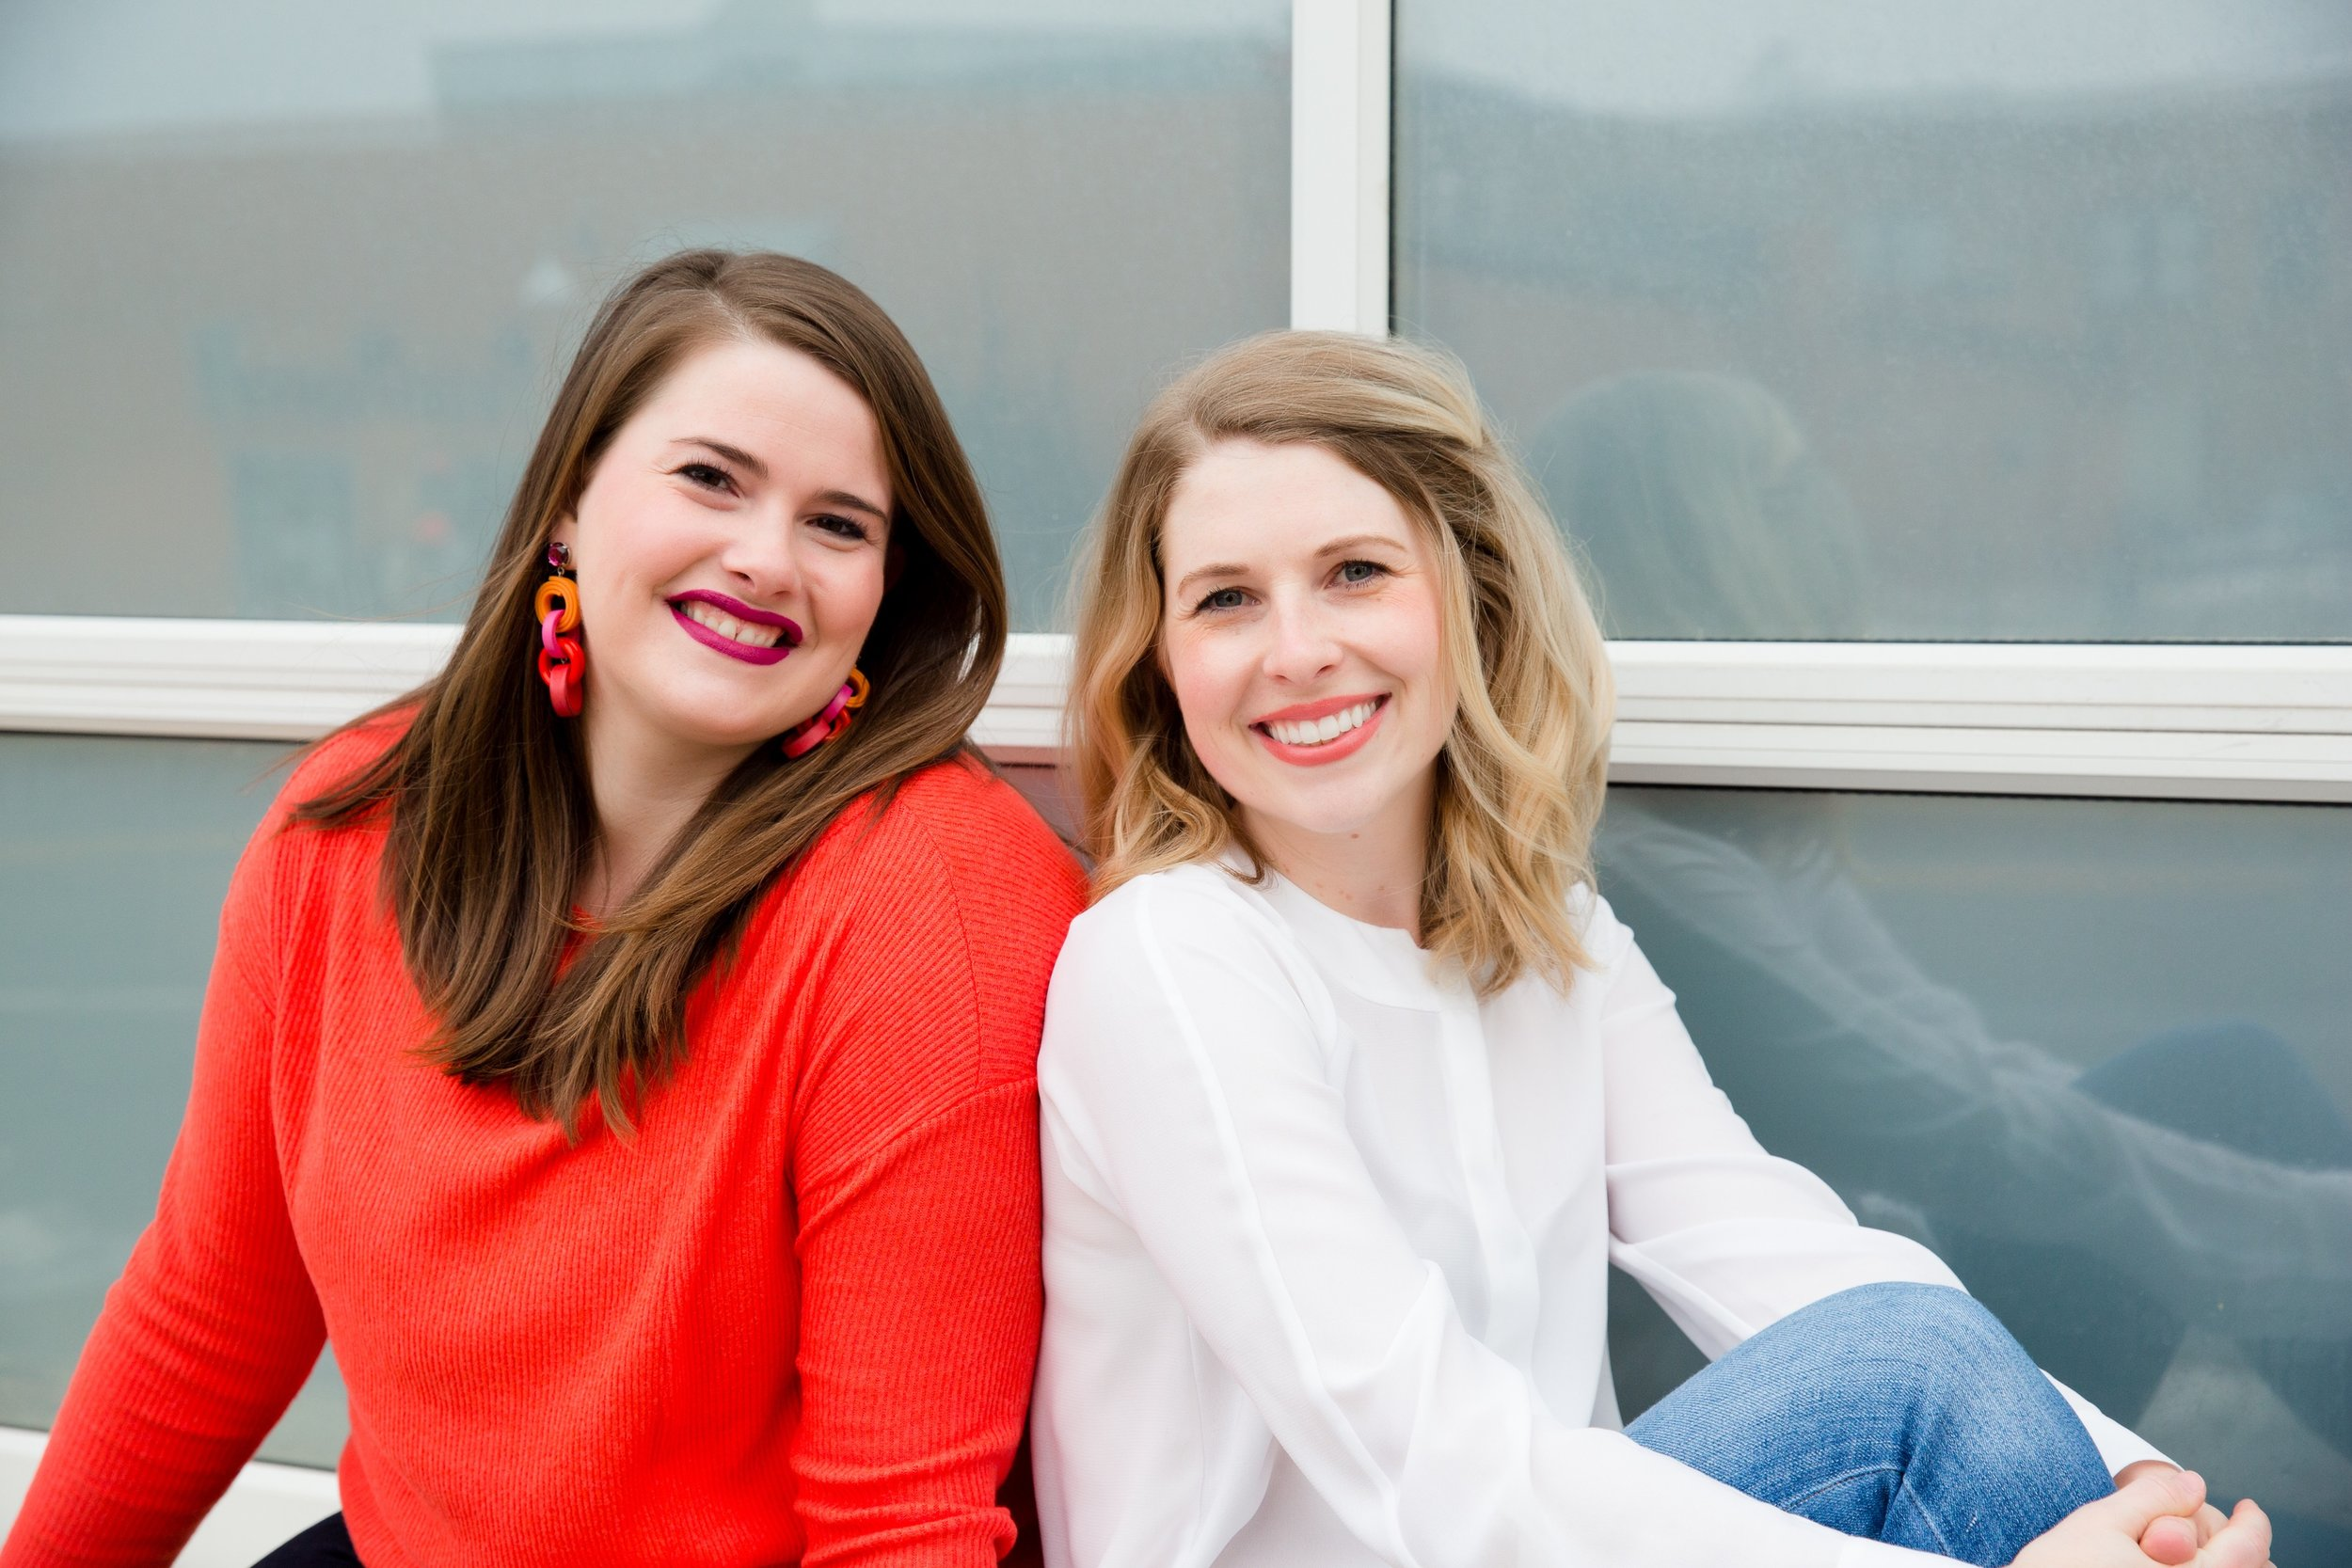 Have you heard of the Hummingbirds? Whitney Warne and Emily Steele are the women behind this buzz-worthy concept and I recently chatted with Emily about how it all came together. - Full disclosure: I'm part of the nest. Also, this interview was edited for length and clarity.